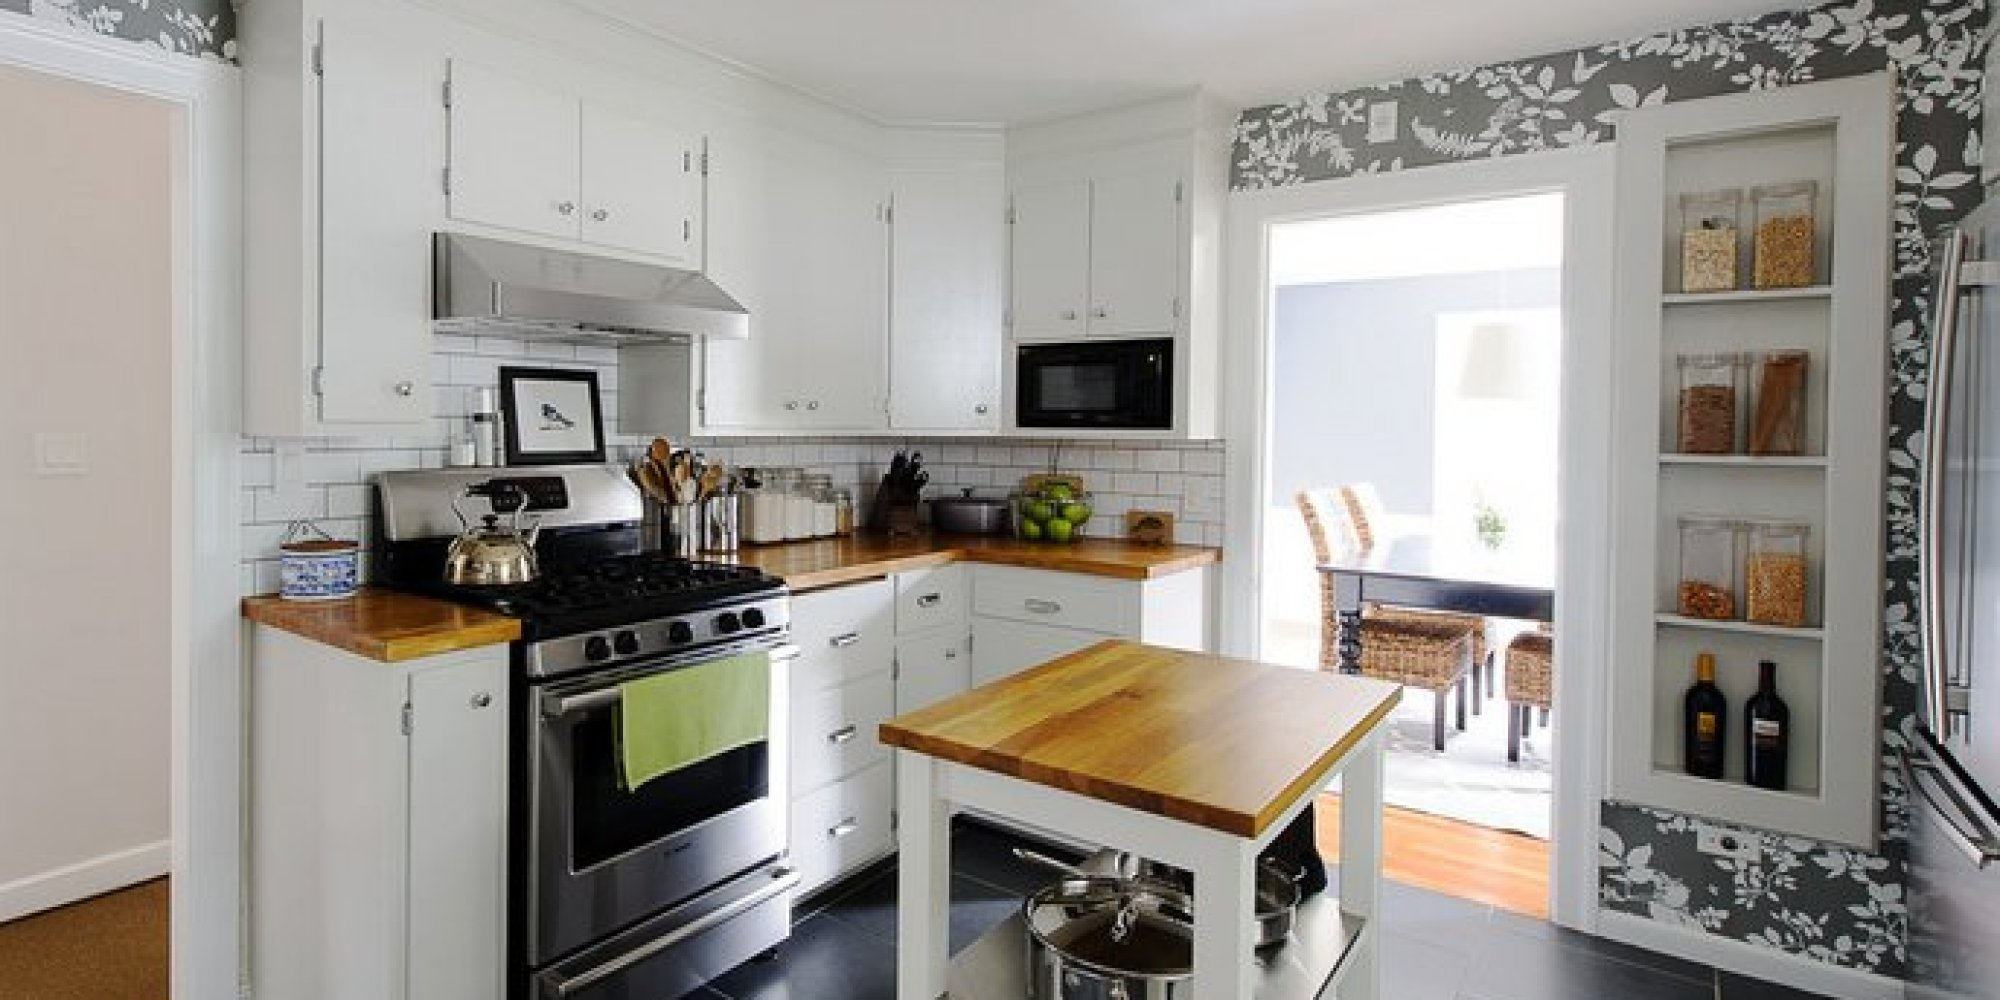 19 inexpensive ways to fix up your kitchen photos huffpost solutioingenieria